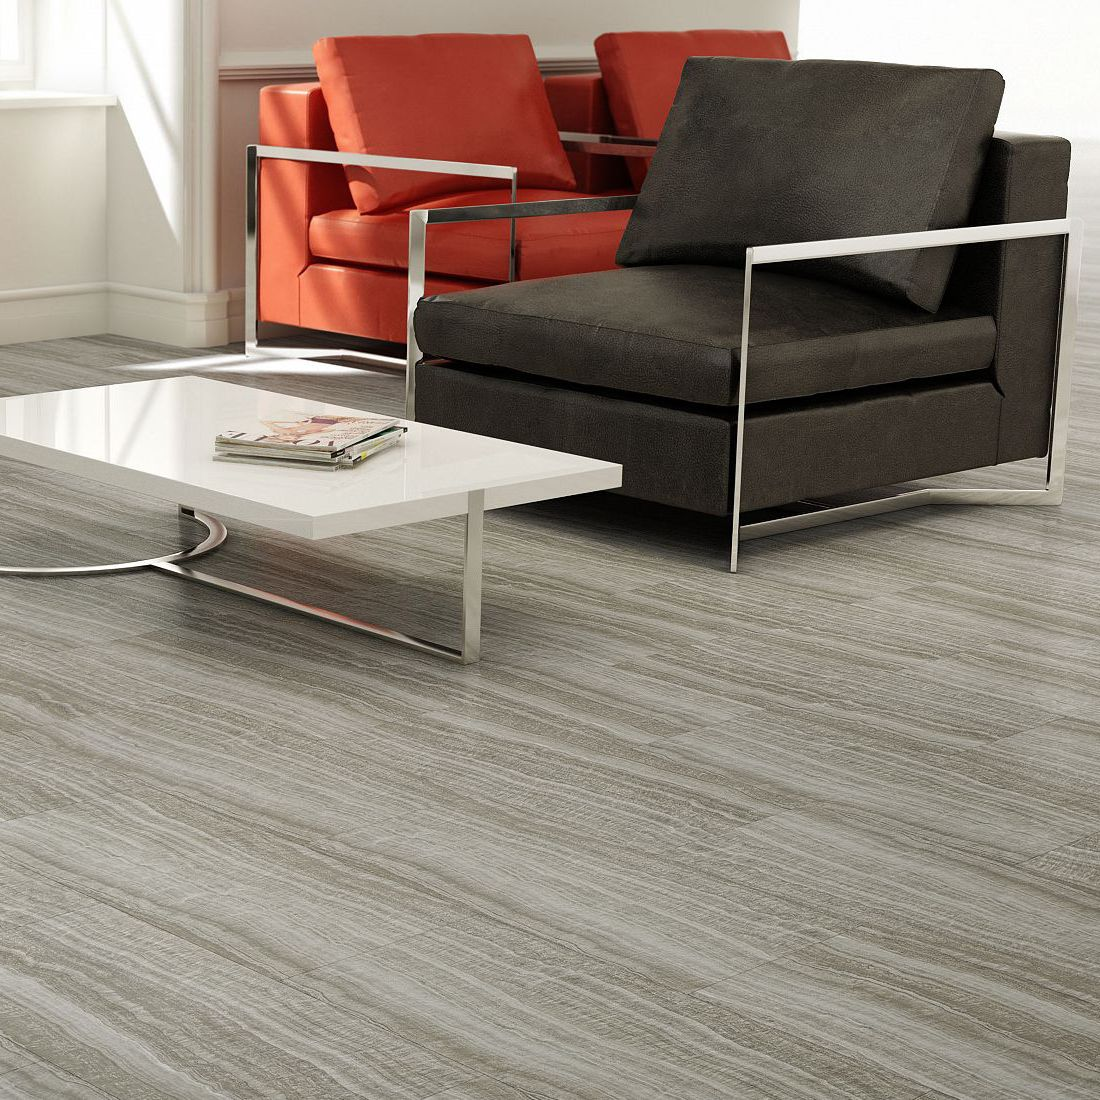 Vinyl flooring commercial tile smooth trenta trenta stone vinyl flooring commercial tile smooth trenta trenta stone dailygadgetfo Gallery